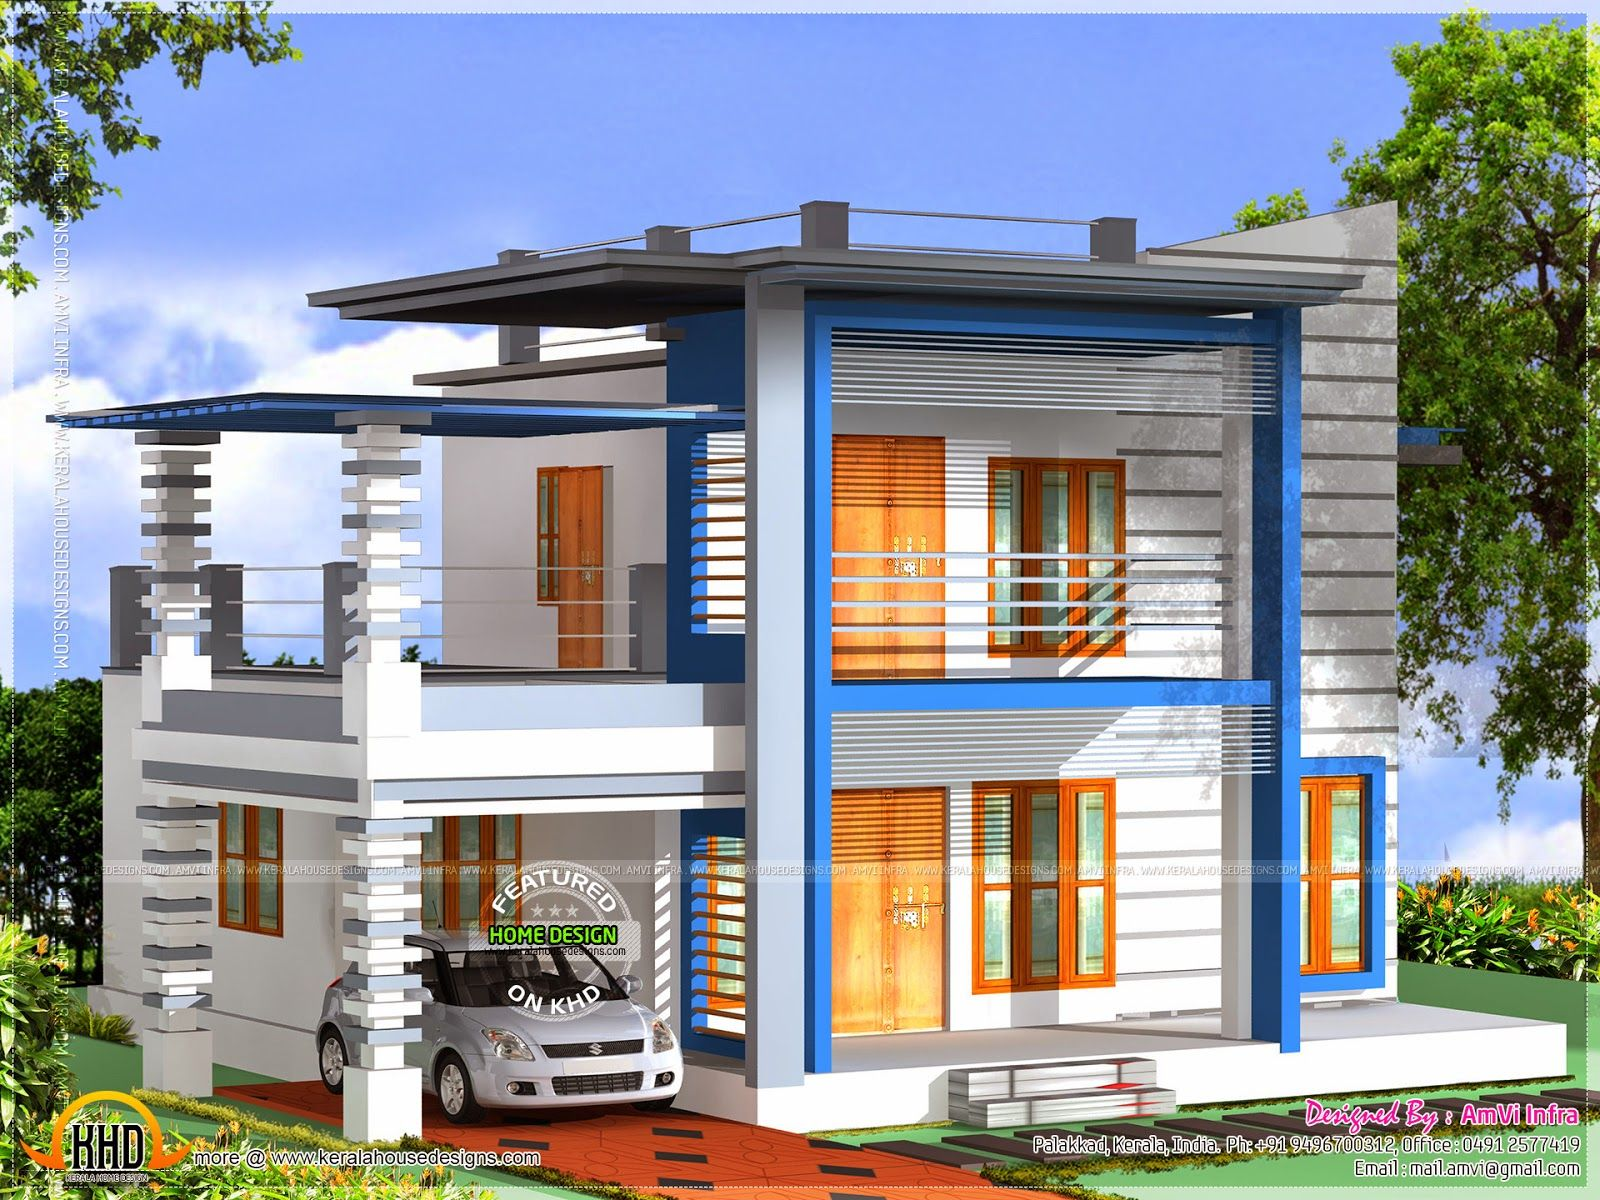 3d view with floor plan Simple house design, Kerala